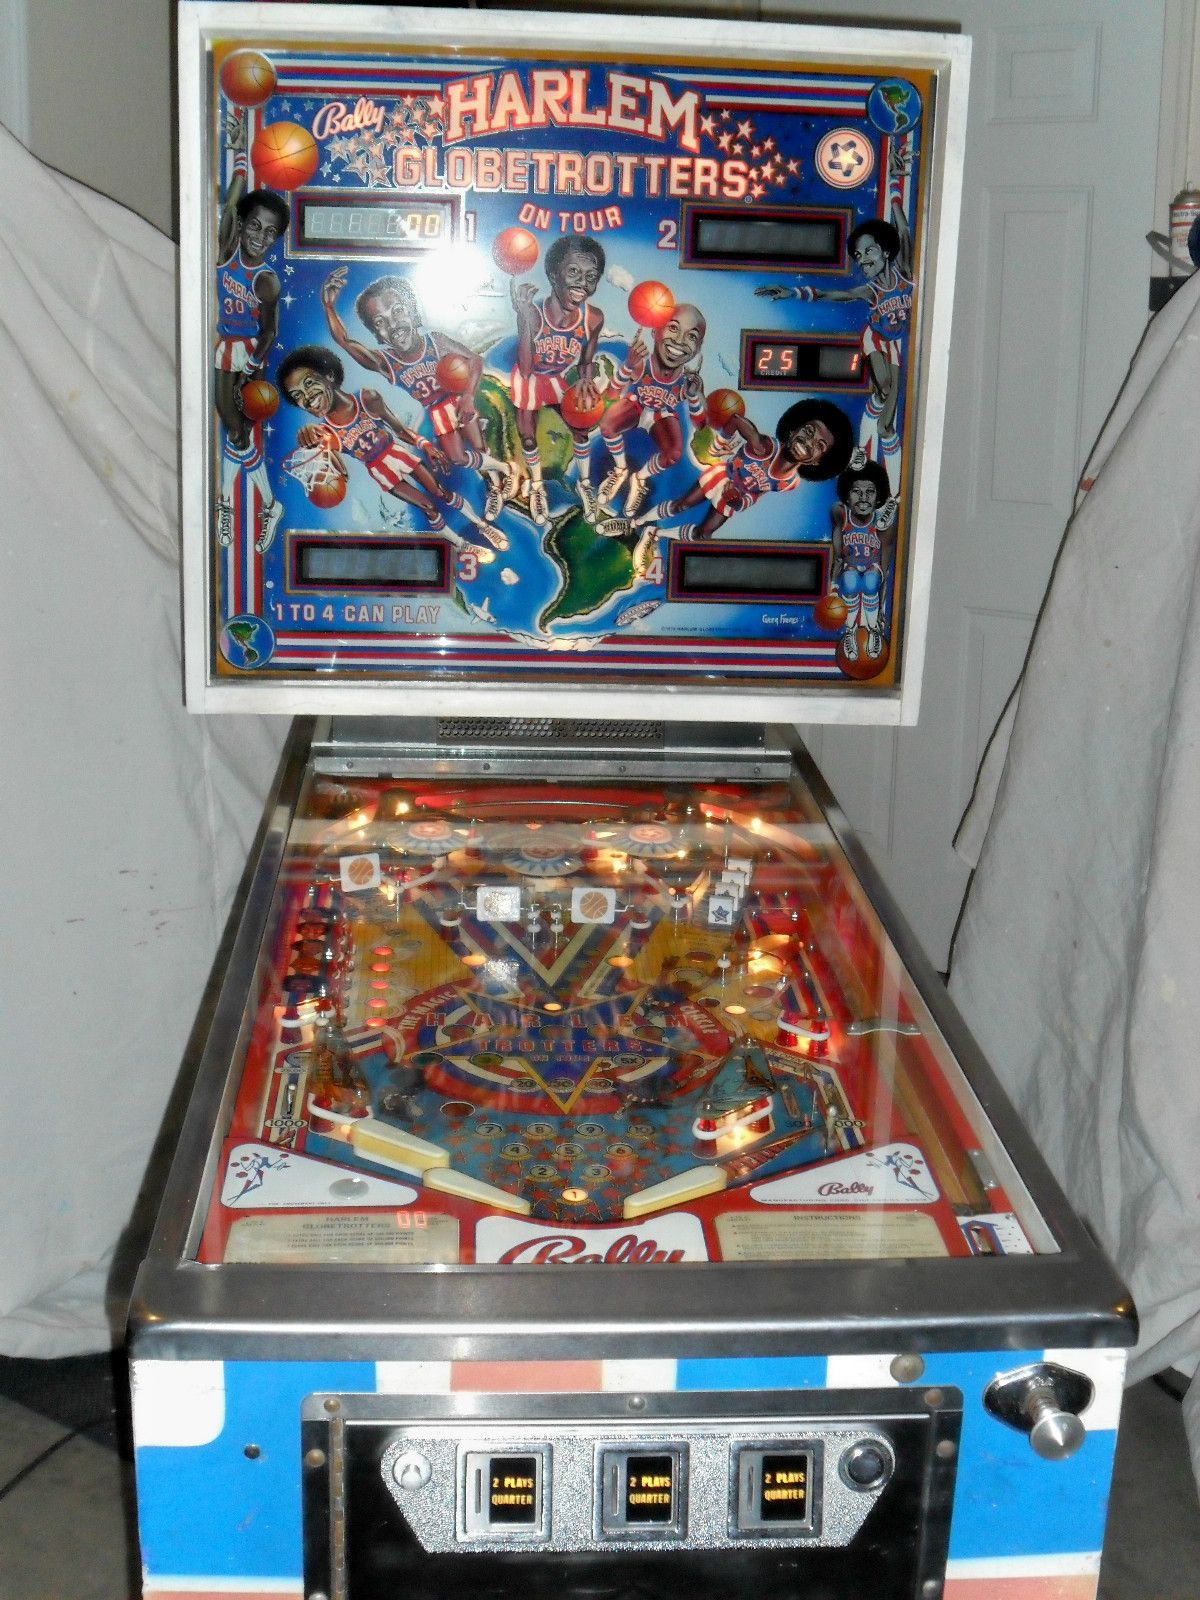 1979 Bally Harlem Globetrotters Pinball Machine, I have a friend that needs to get rid of this machine.